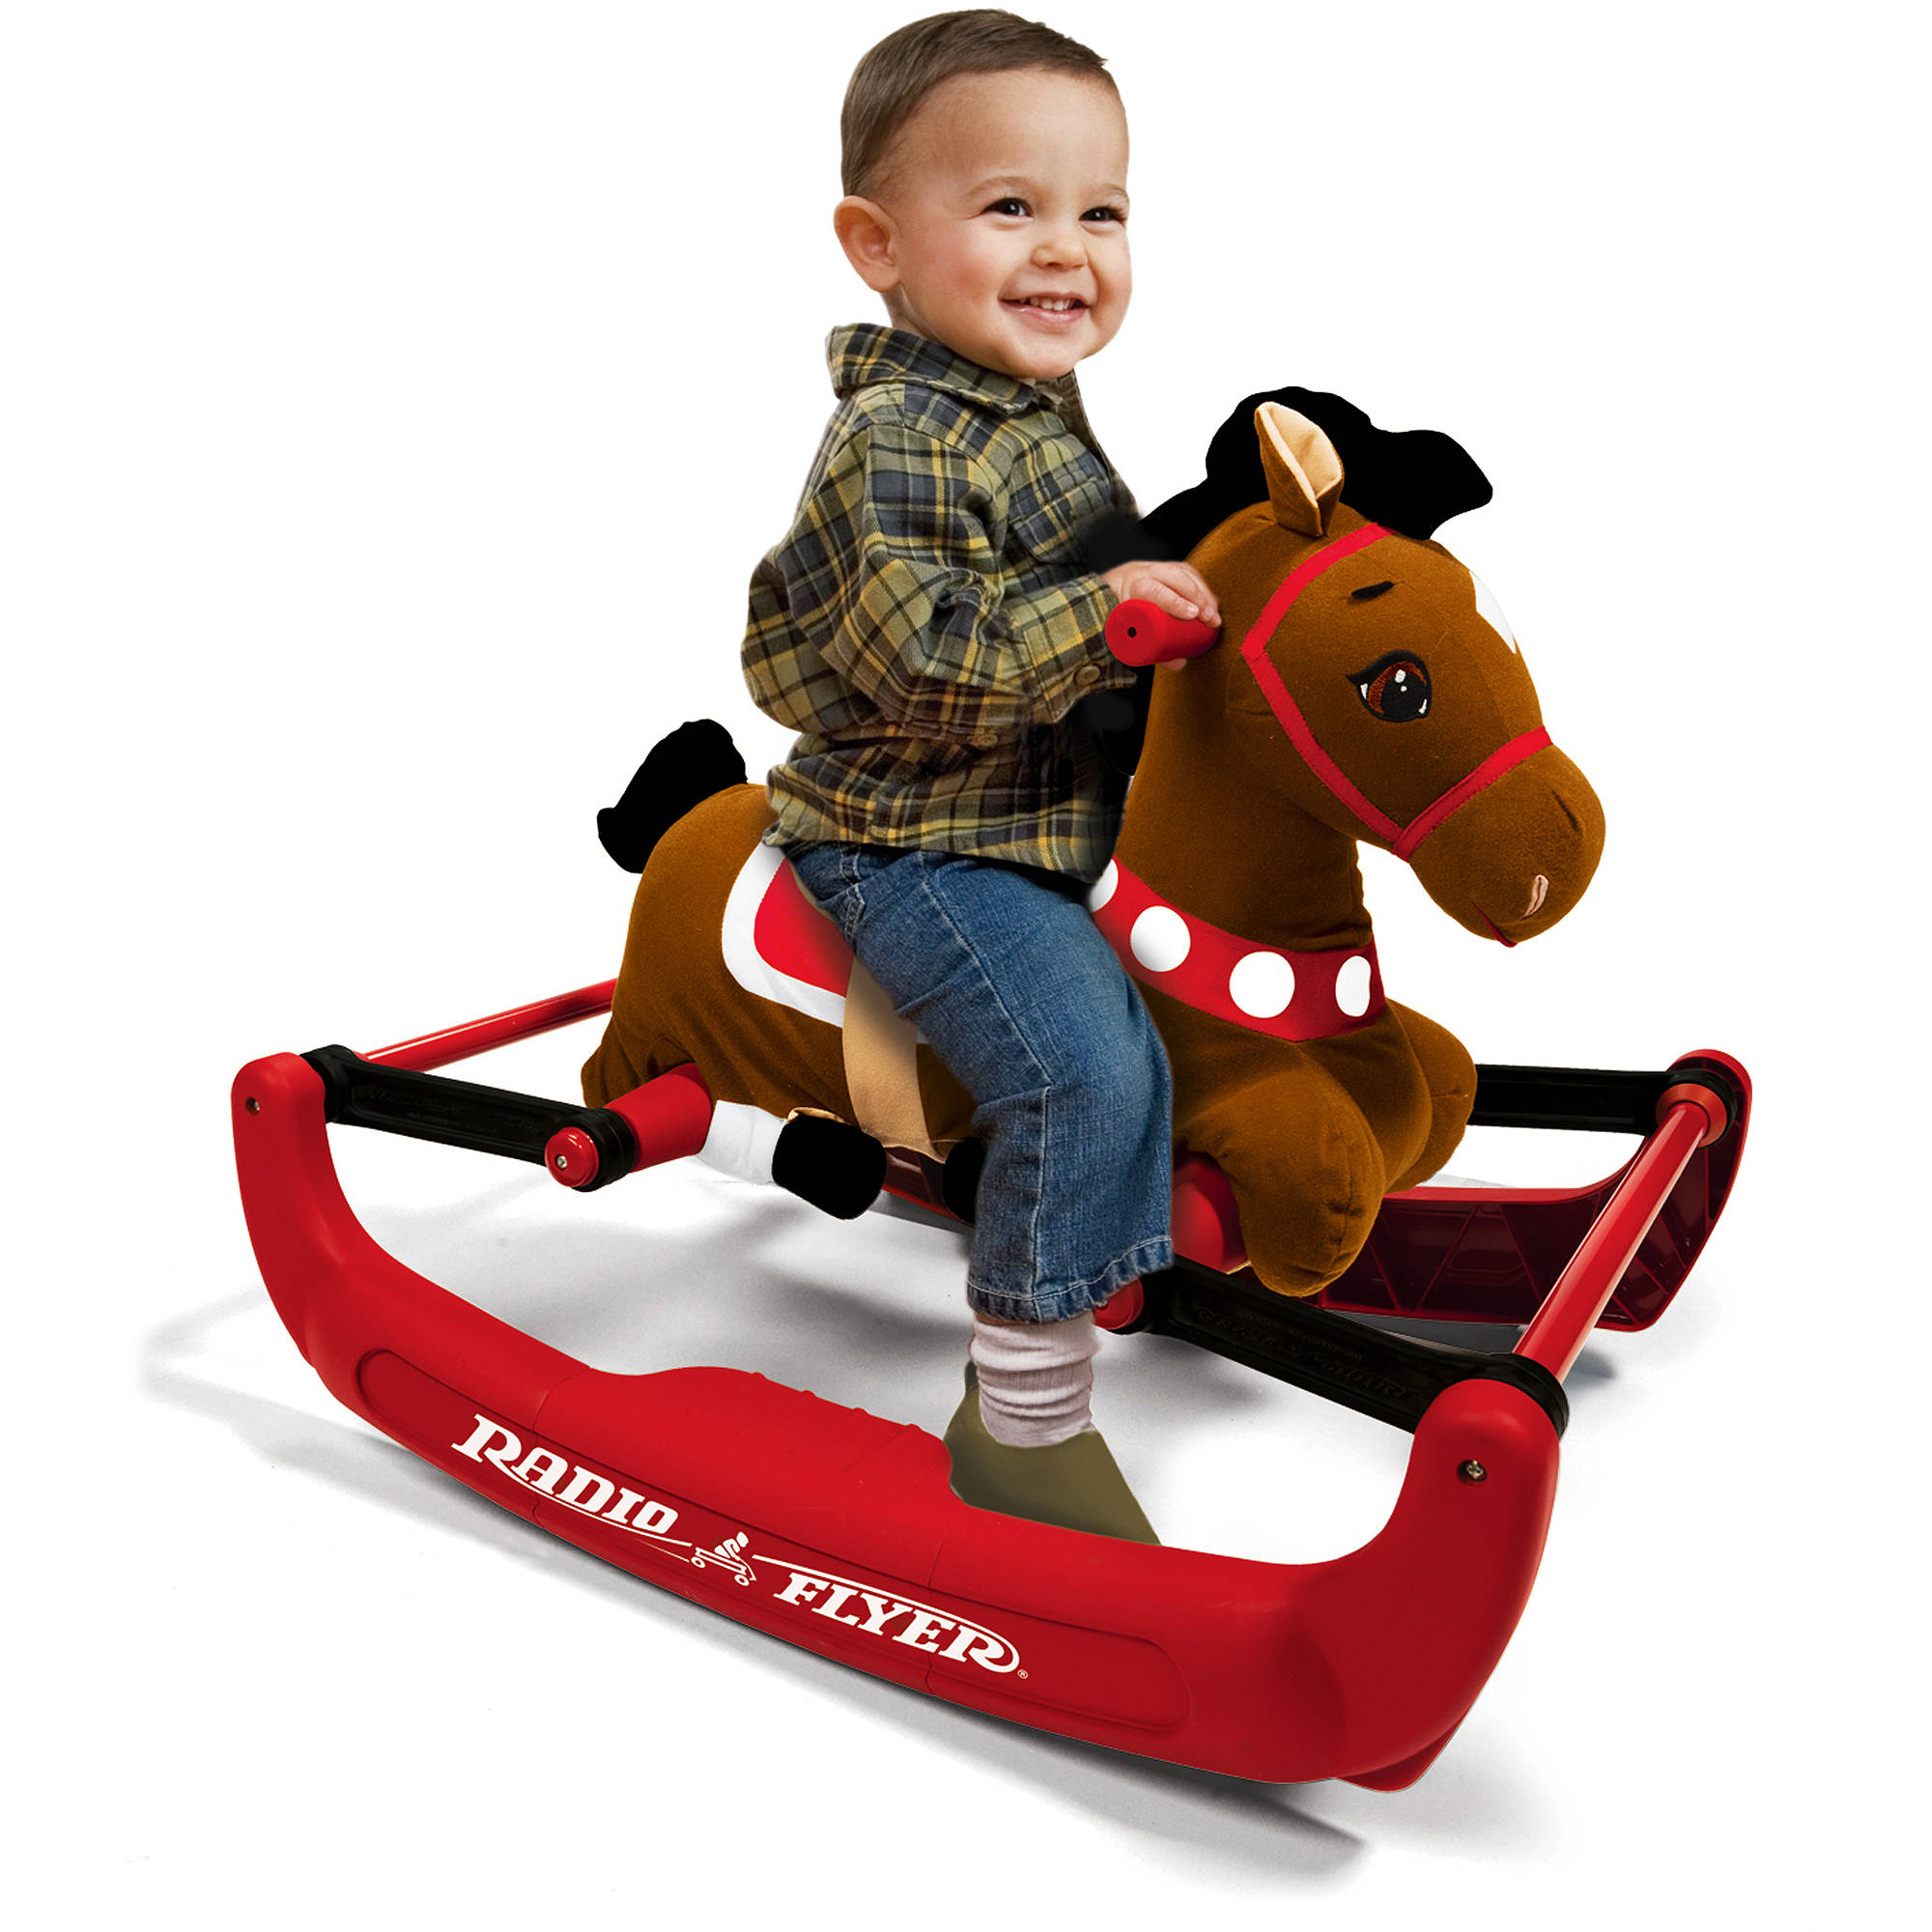 Toy Horses for Kids